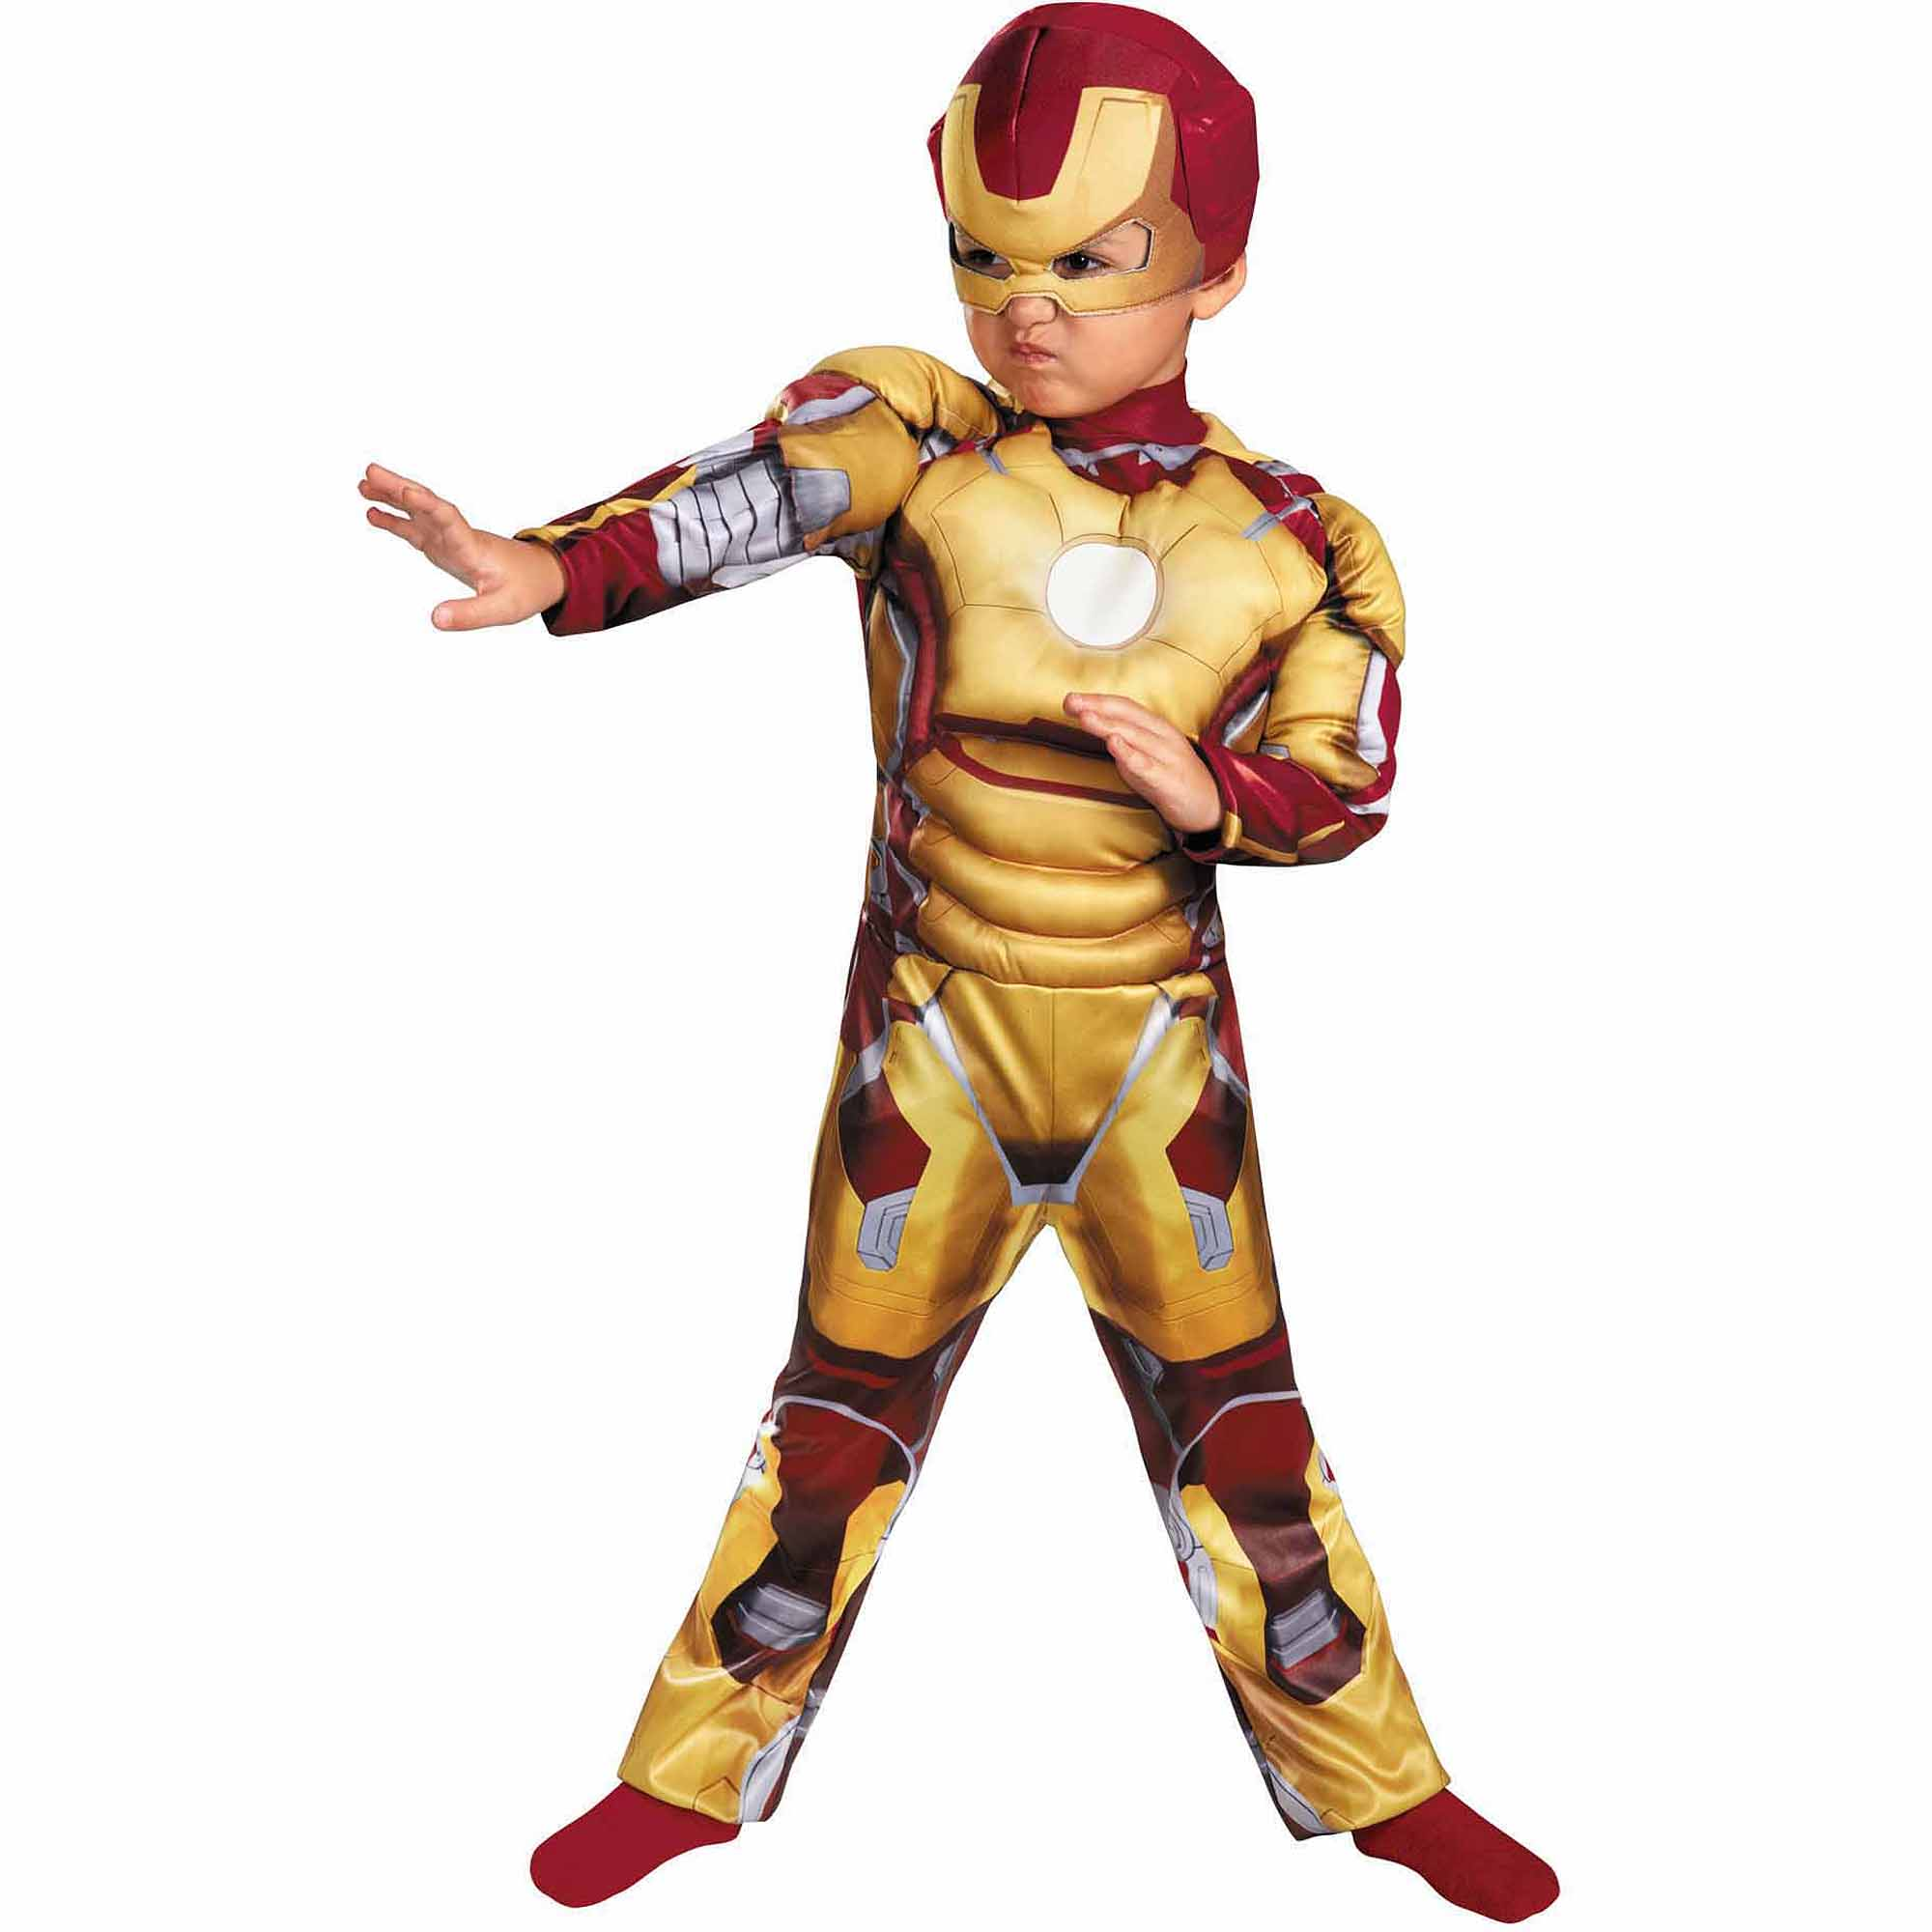 Iron Man Mark 42 Child Halloween Costume, S (4-6)